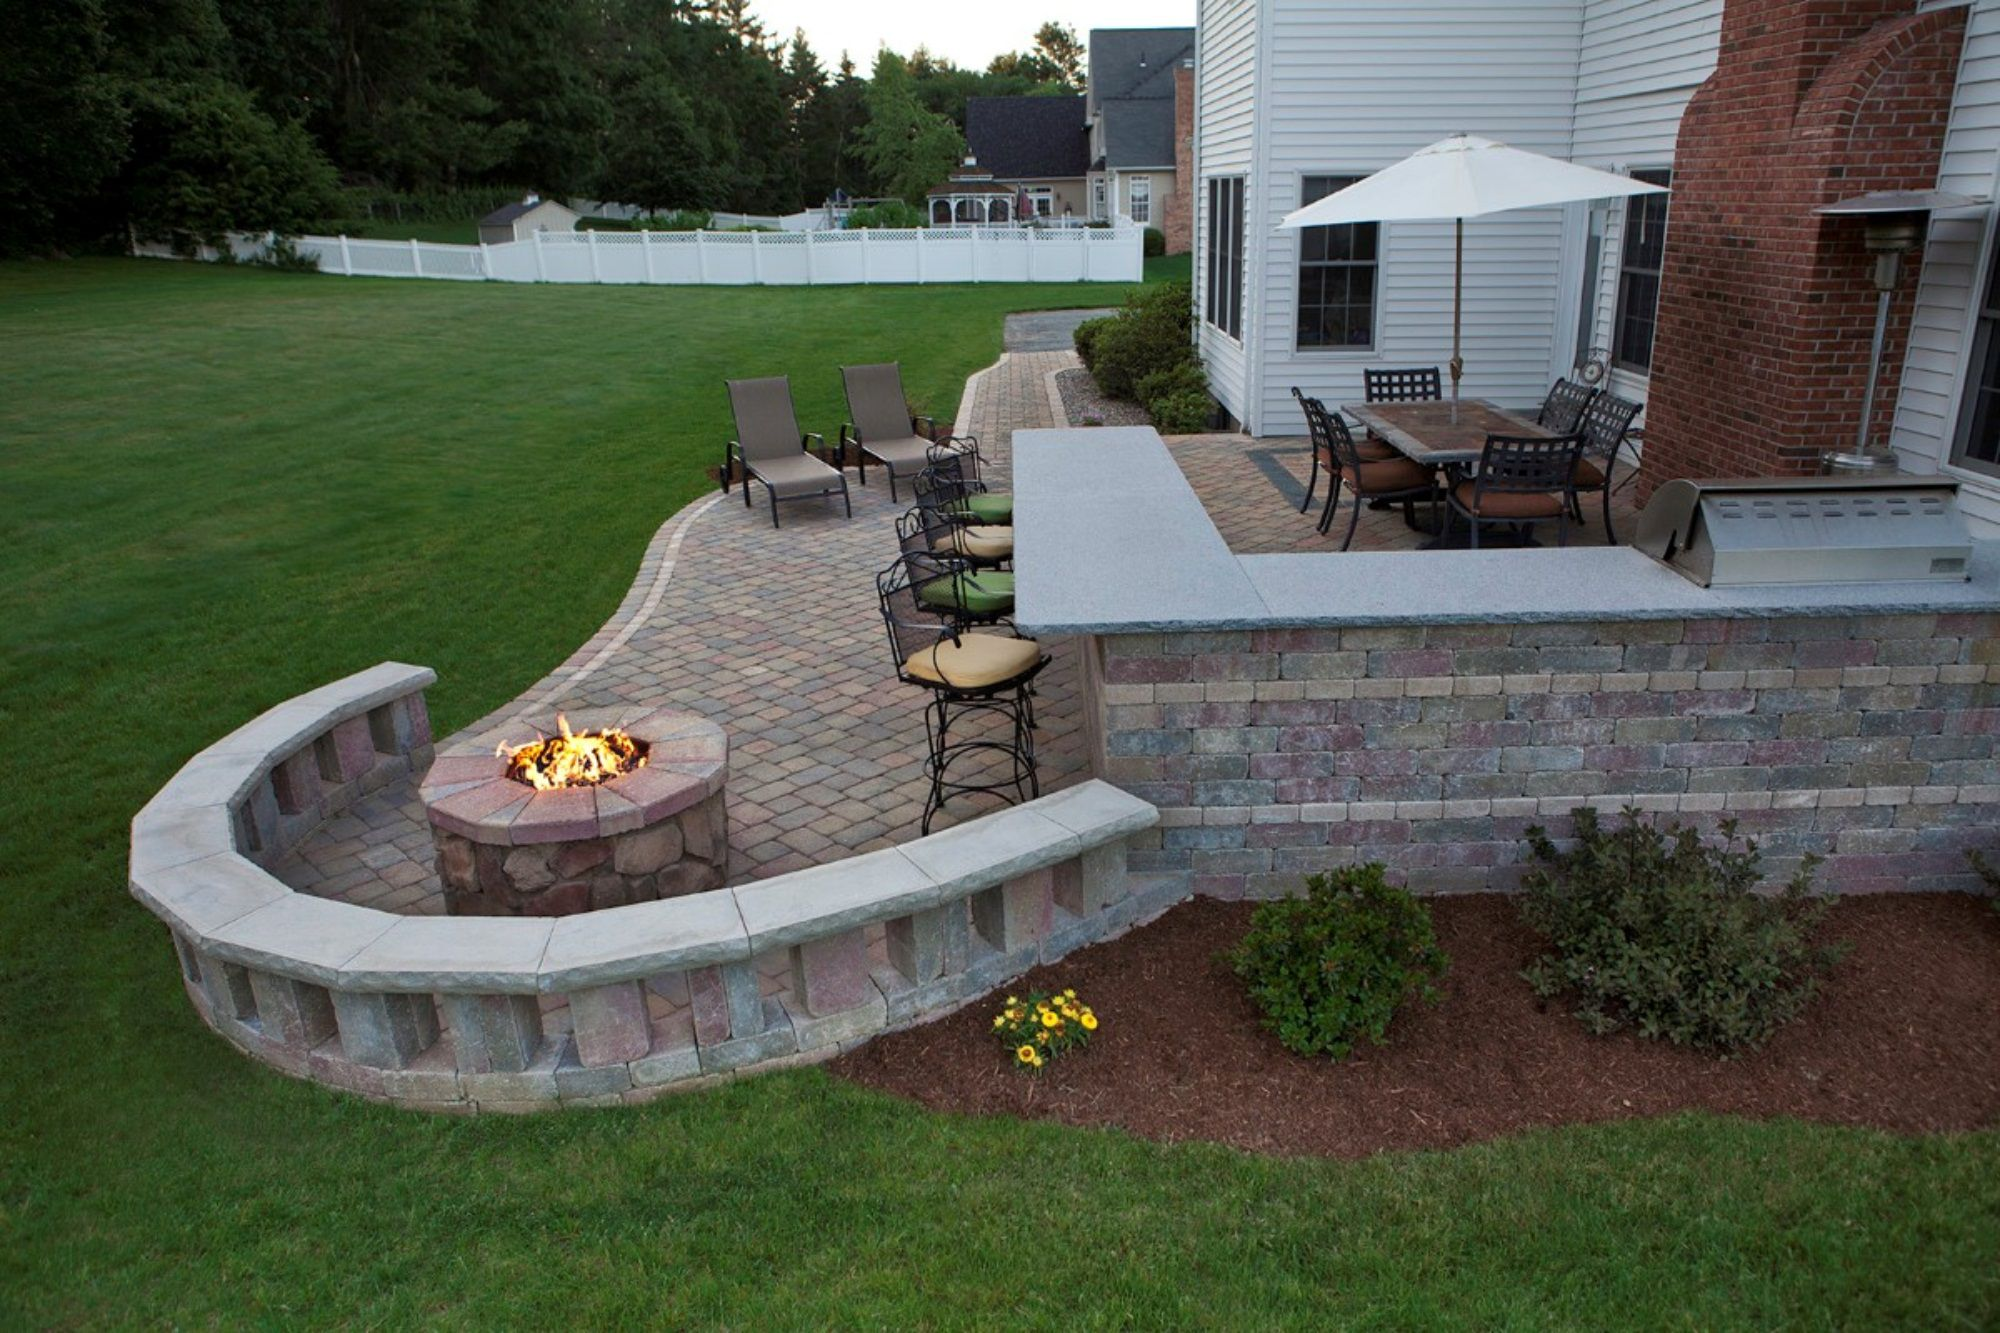 Unusual Curvy Patio Ideas with Well Connected Gathering and Lounge Space with Parasol